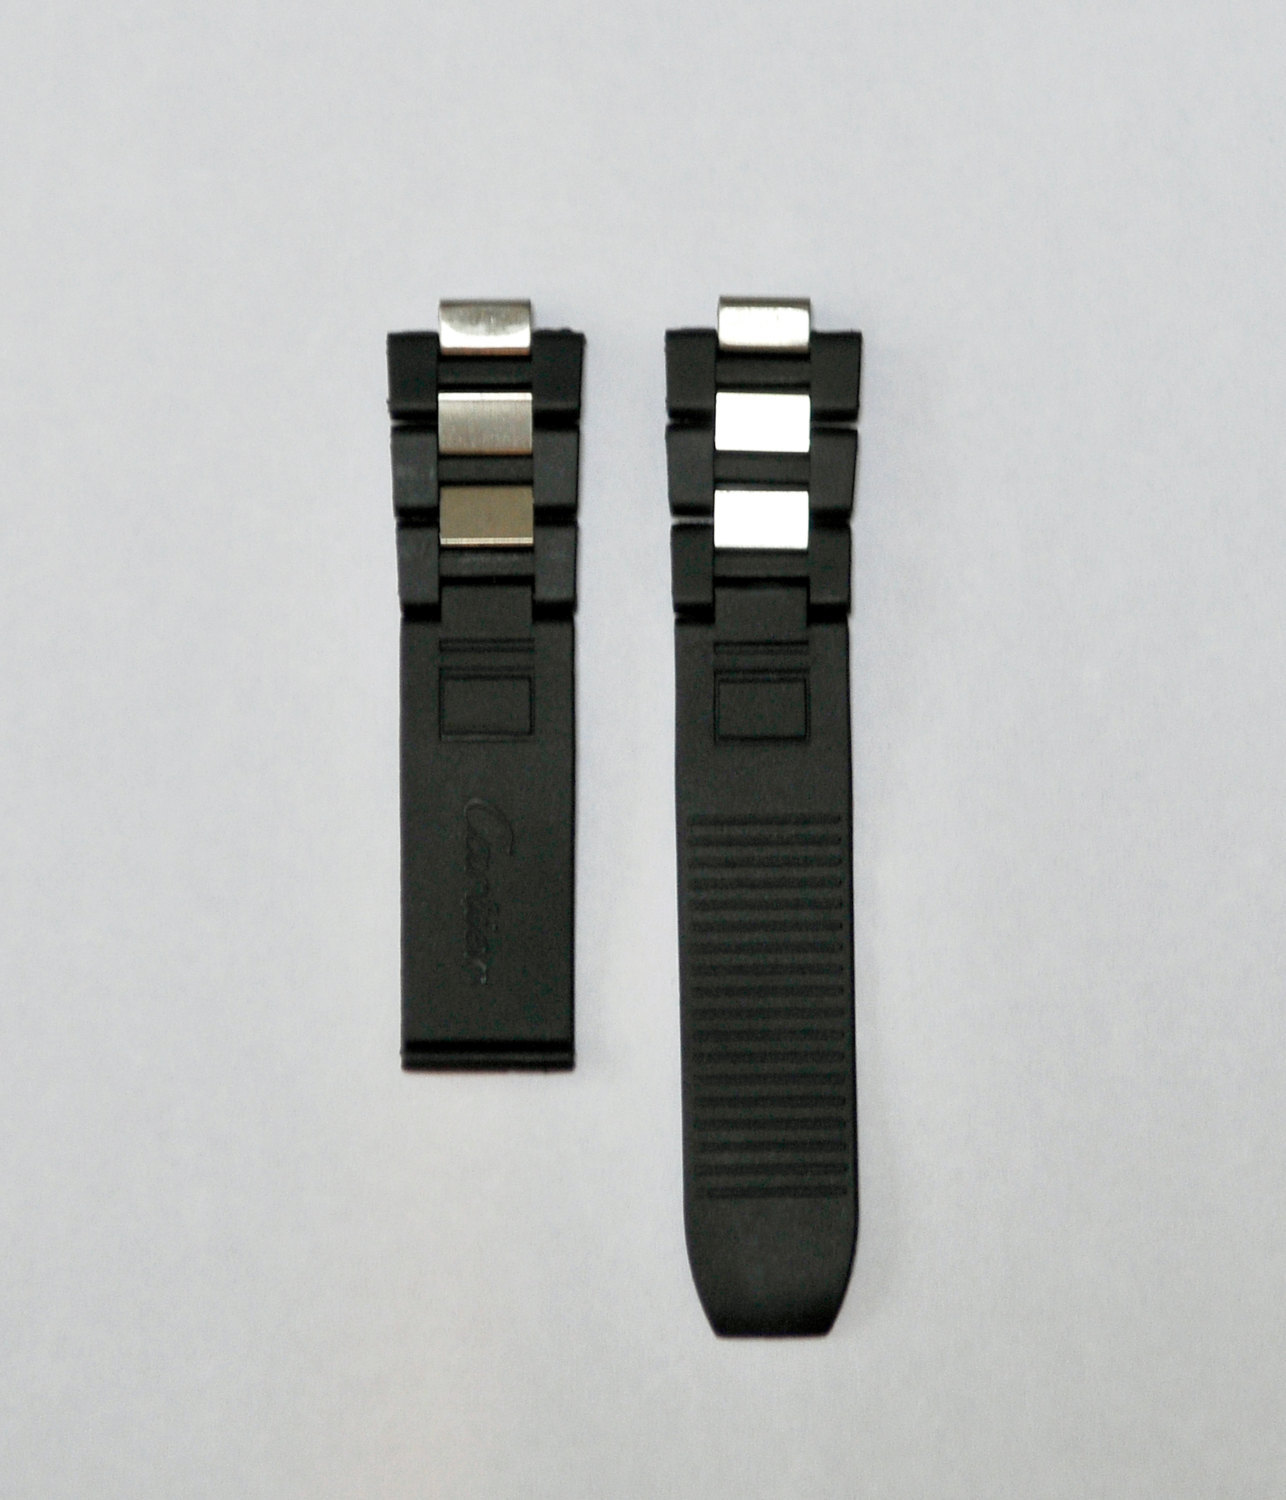 New Black Watch Replacement Band Strap fits (for) CARTIER Must 21 Chronoscaph &